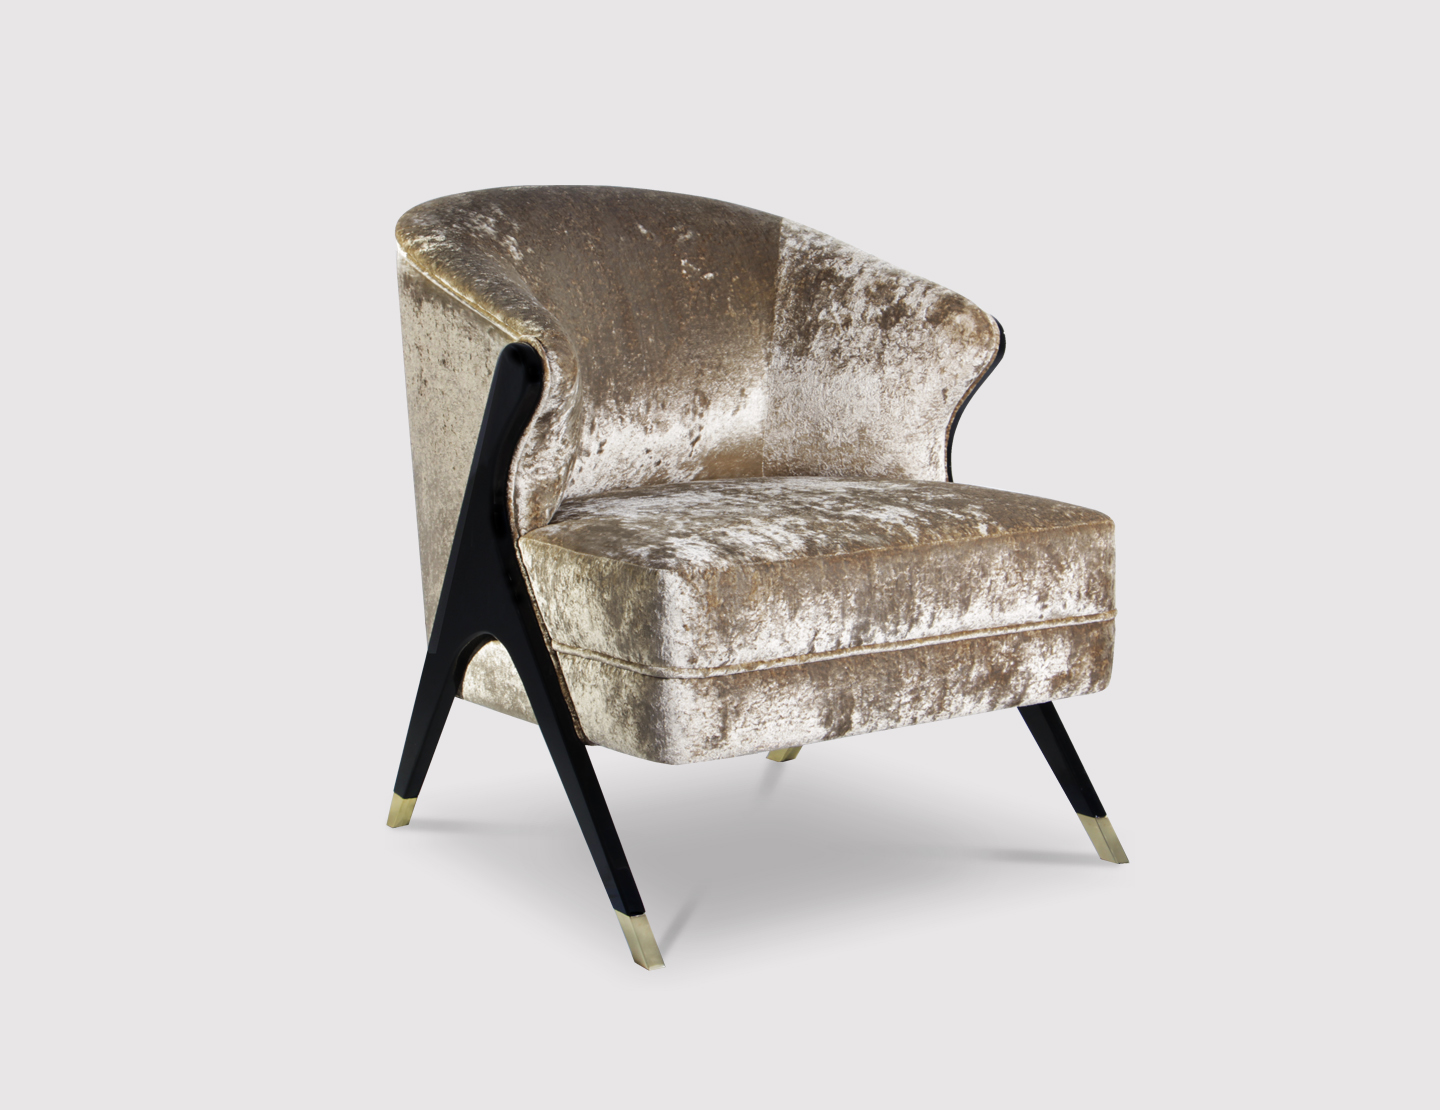 Naomi chair by KOKET at Decorex - upholstered lounge chair - luxury furniture - glamorous living room chairs